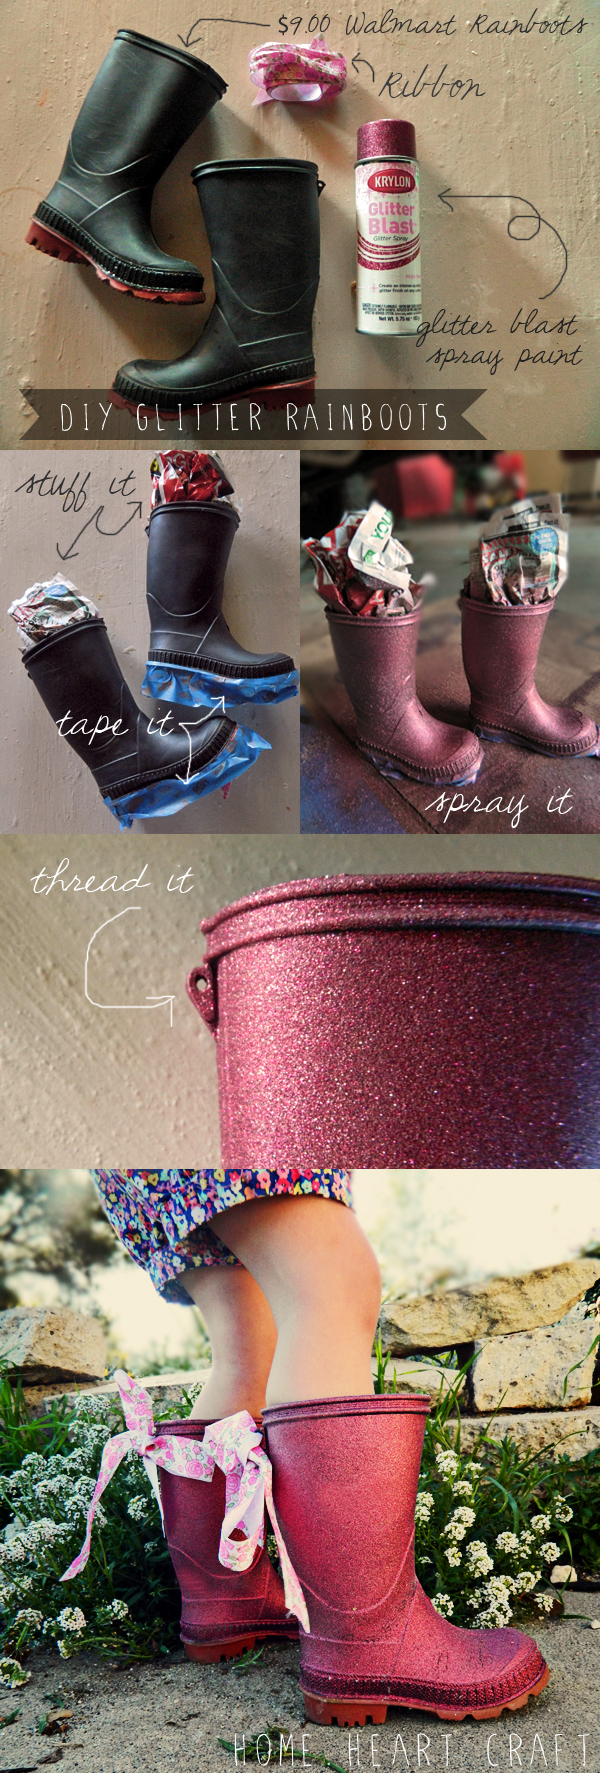 diy glitter rainboots kid how to 2